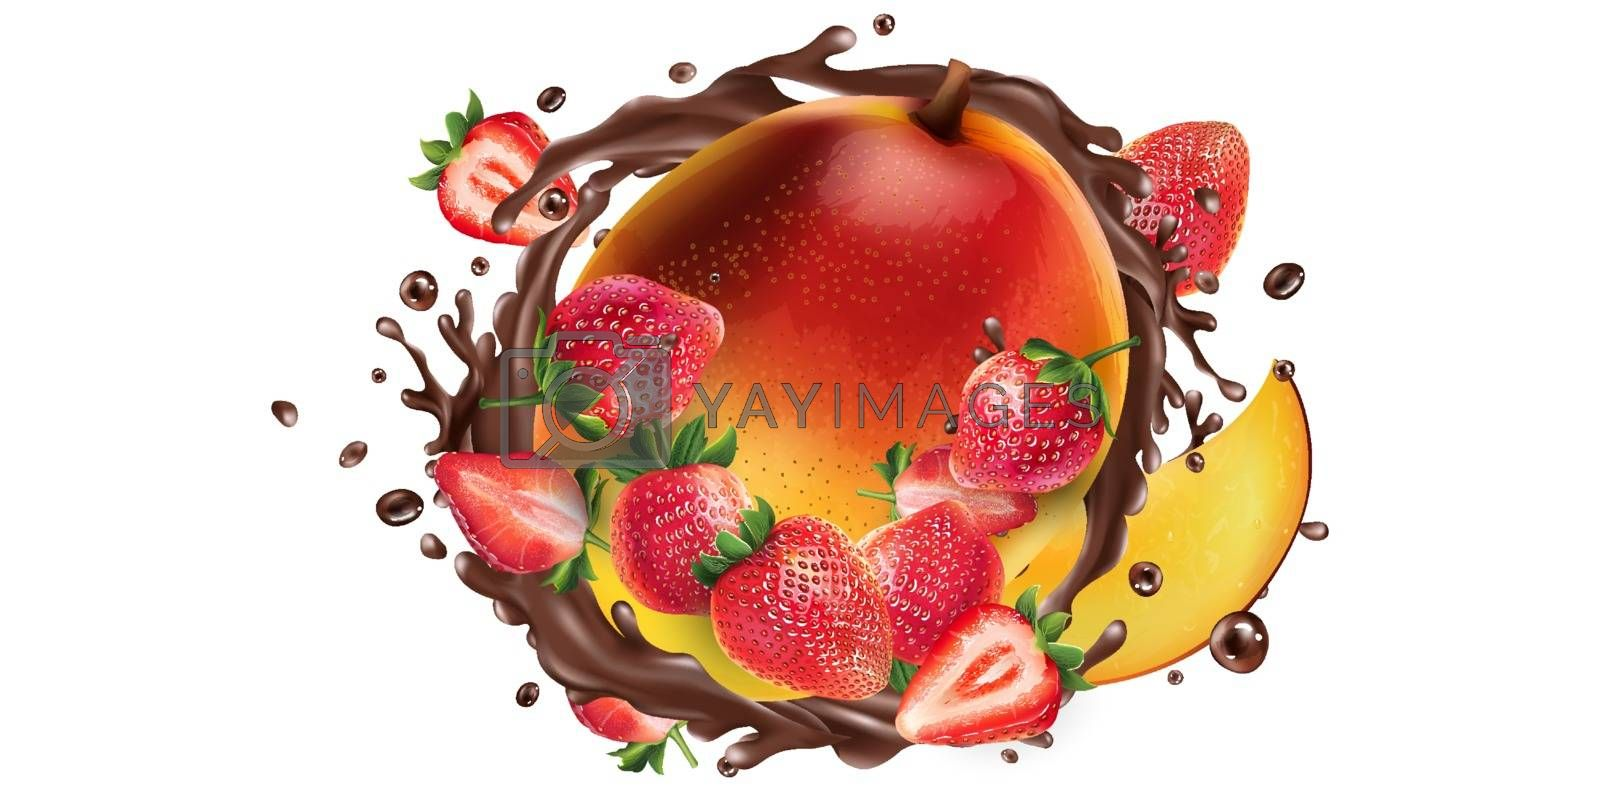 Fresh mango with strawberries and a splash of liquid chocolate on a white background. Realistic vector illustration.